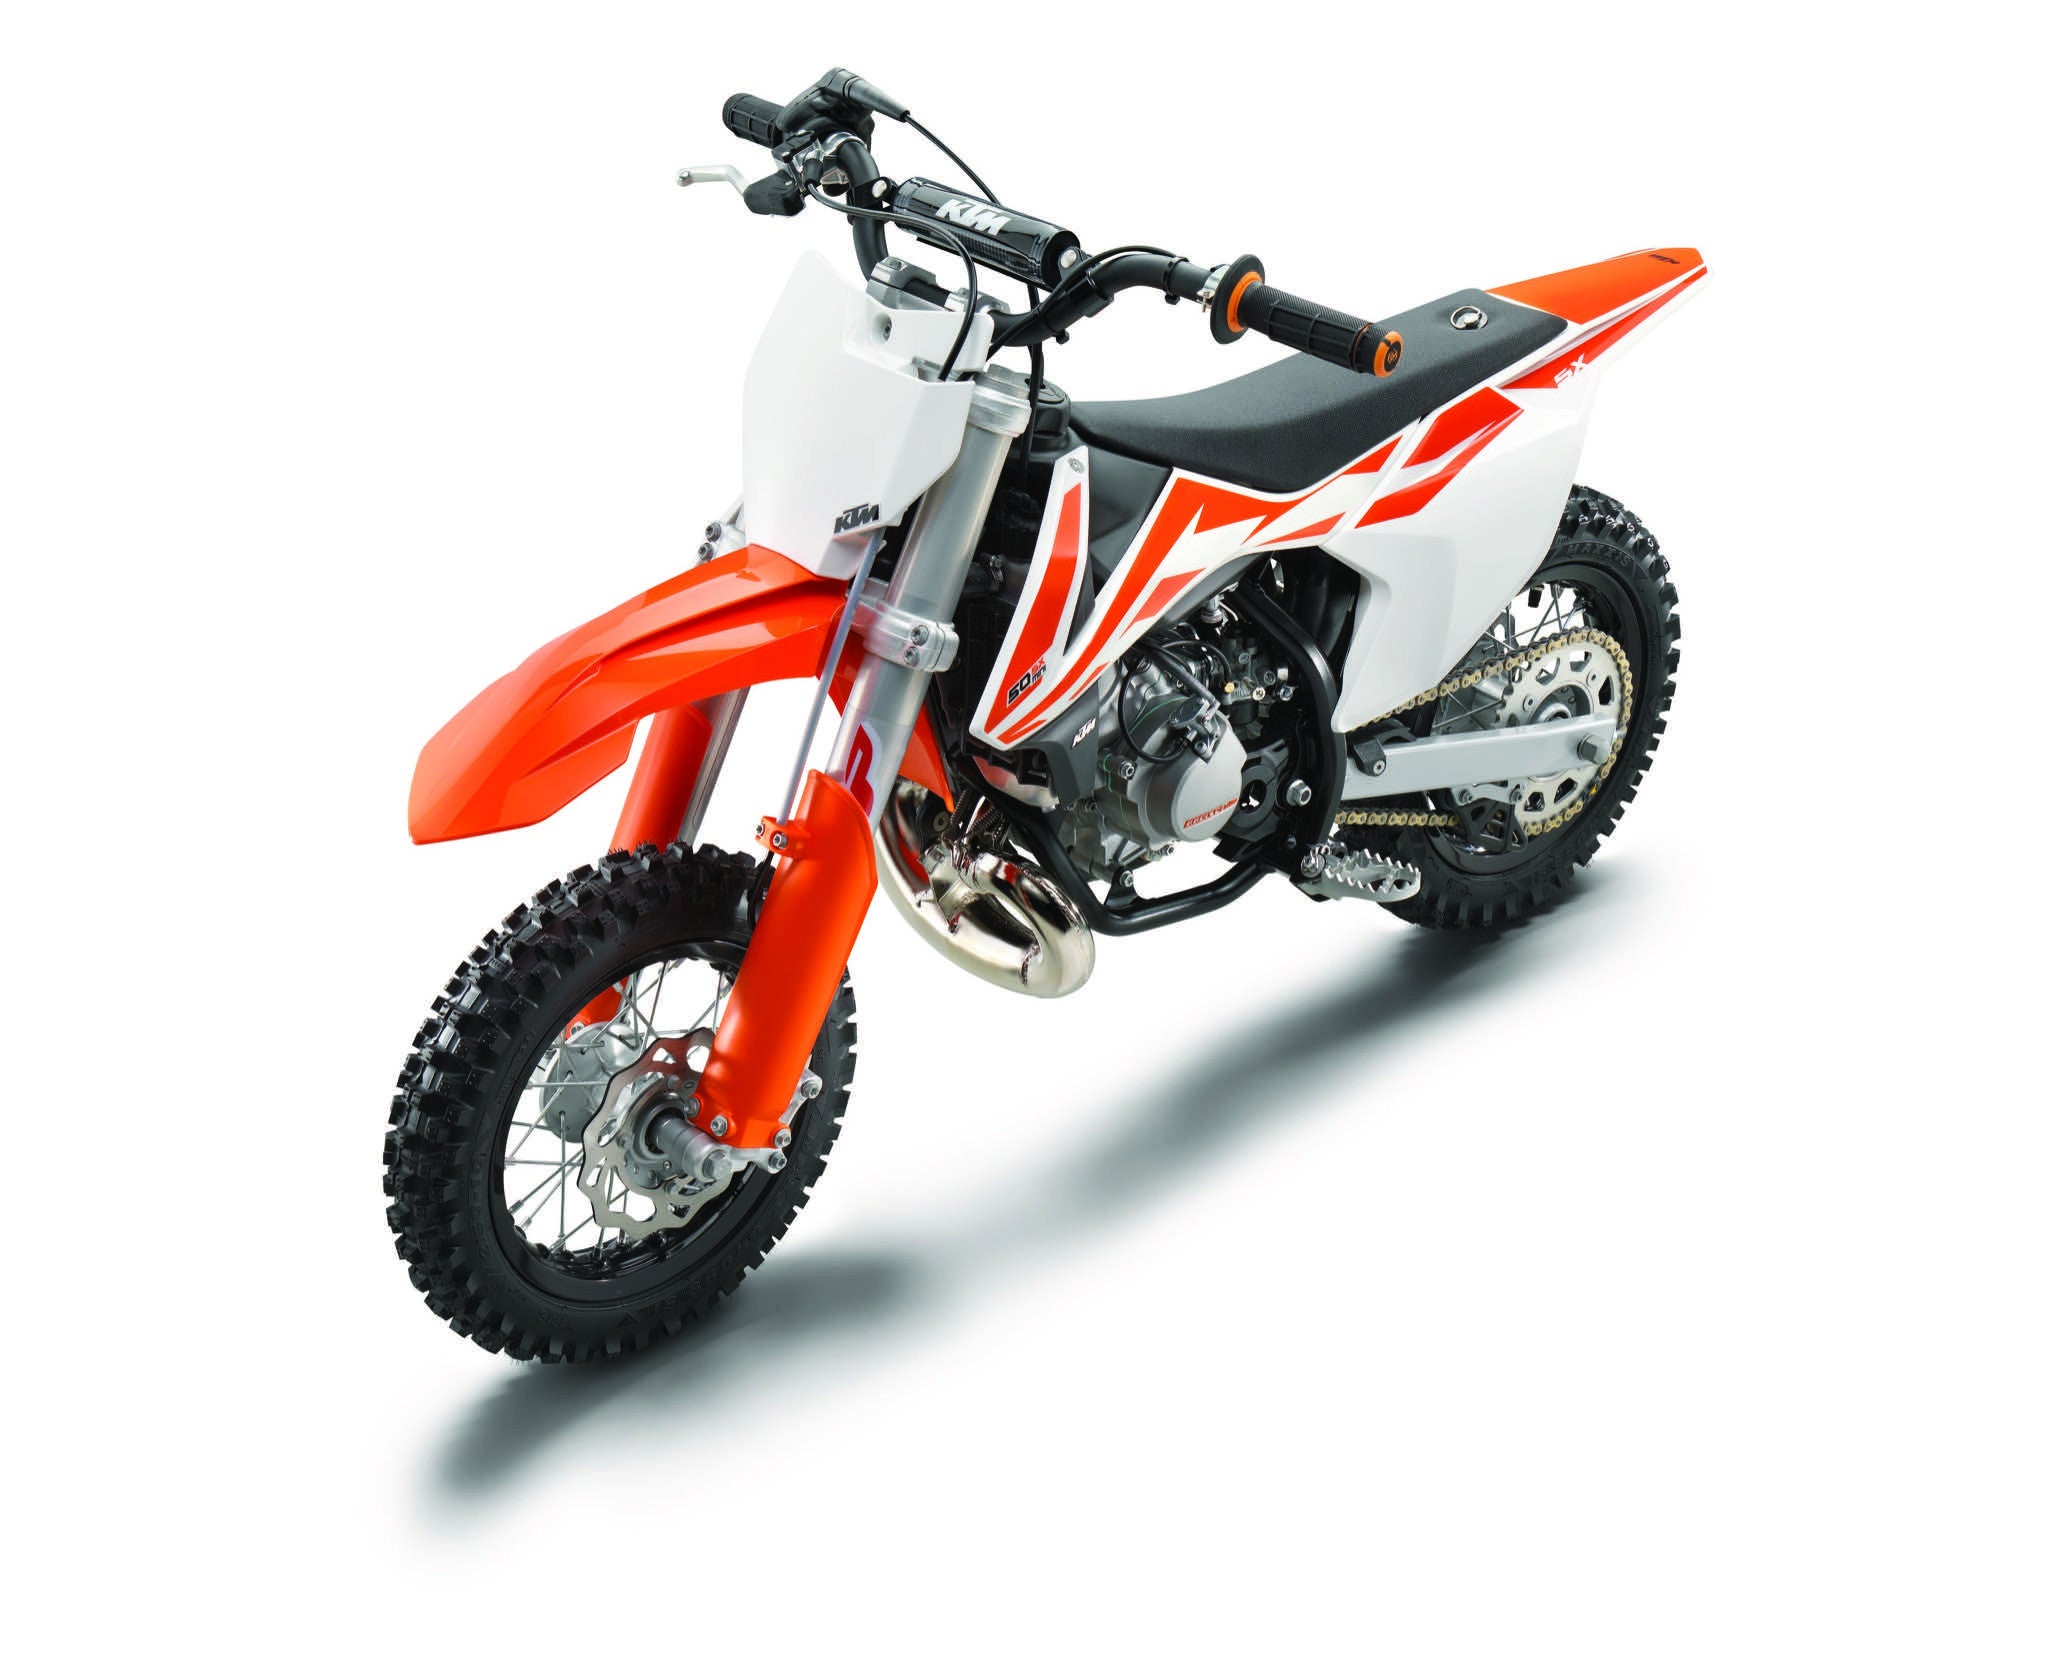 2017 ktm 50 sx mini motorcycle young mx riders cfps central florida powersports. Black Bedroom Furniture Sets. Home Design Ideas